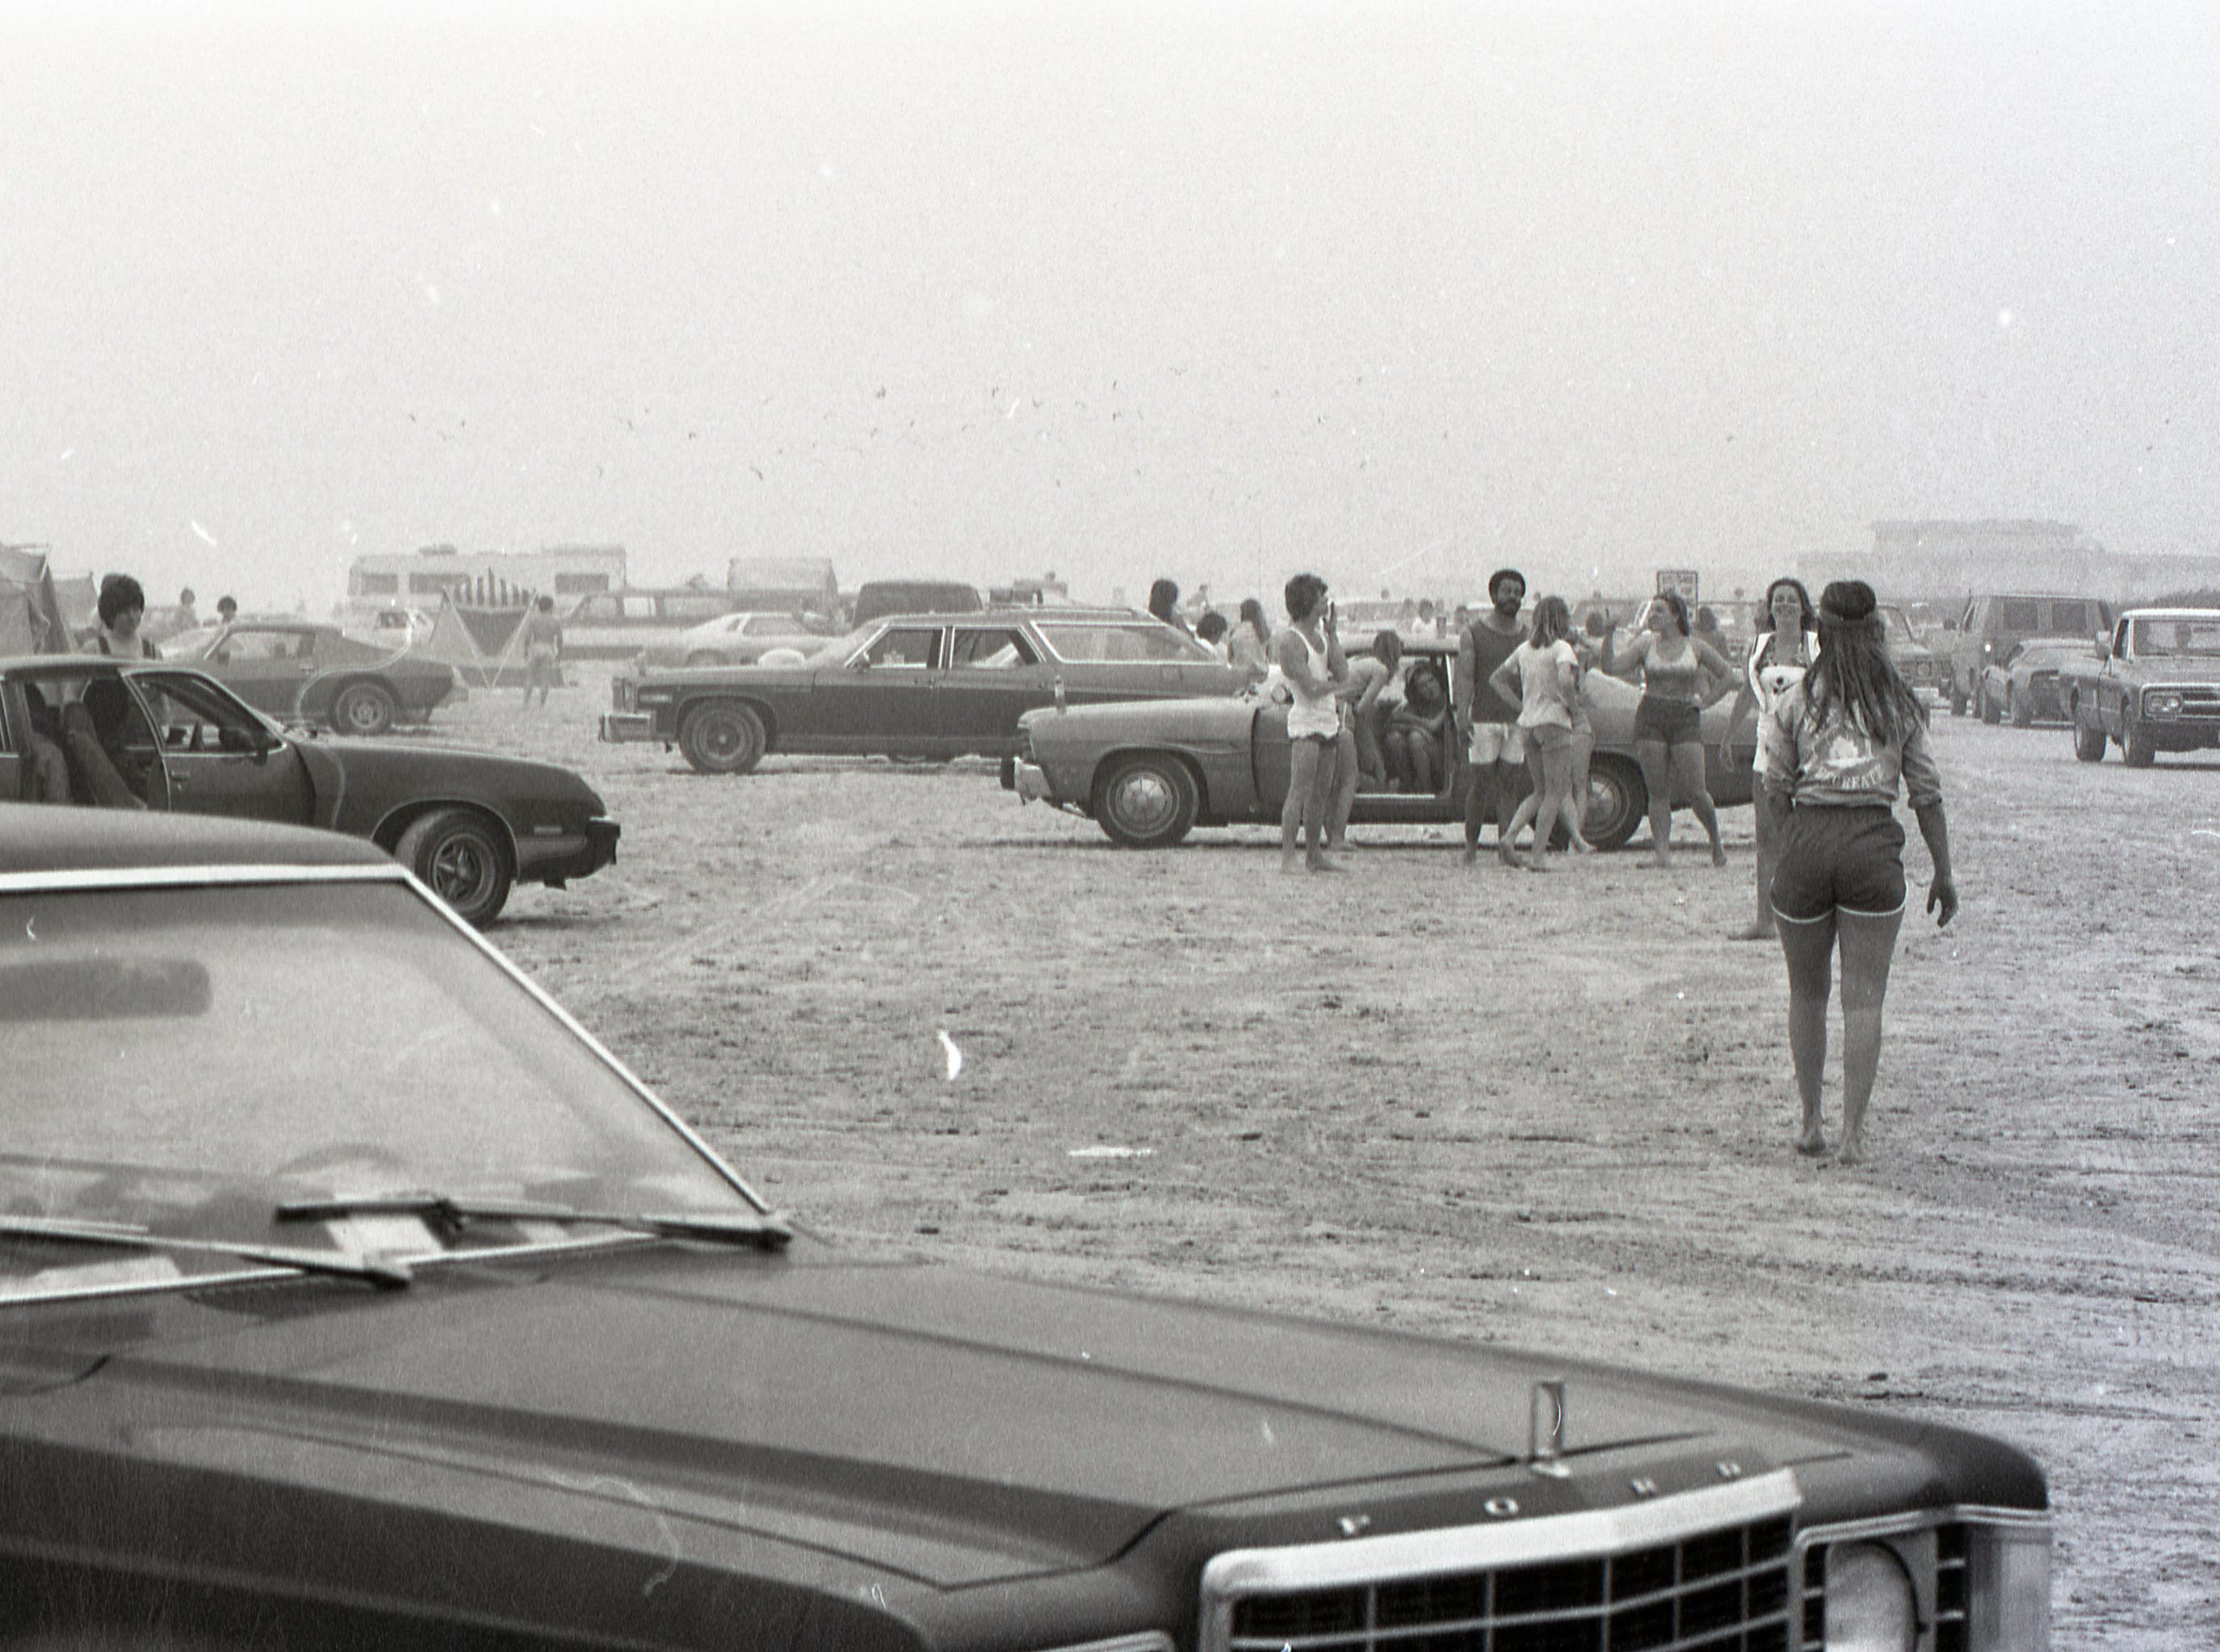 Padre and Mustang islands have both been popular with spring breakers, like these seen here on March 17, 1979.